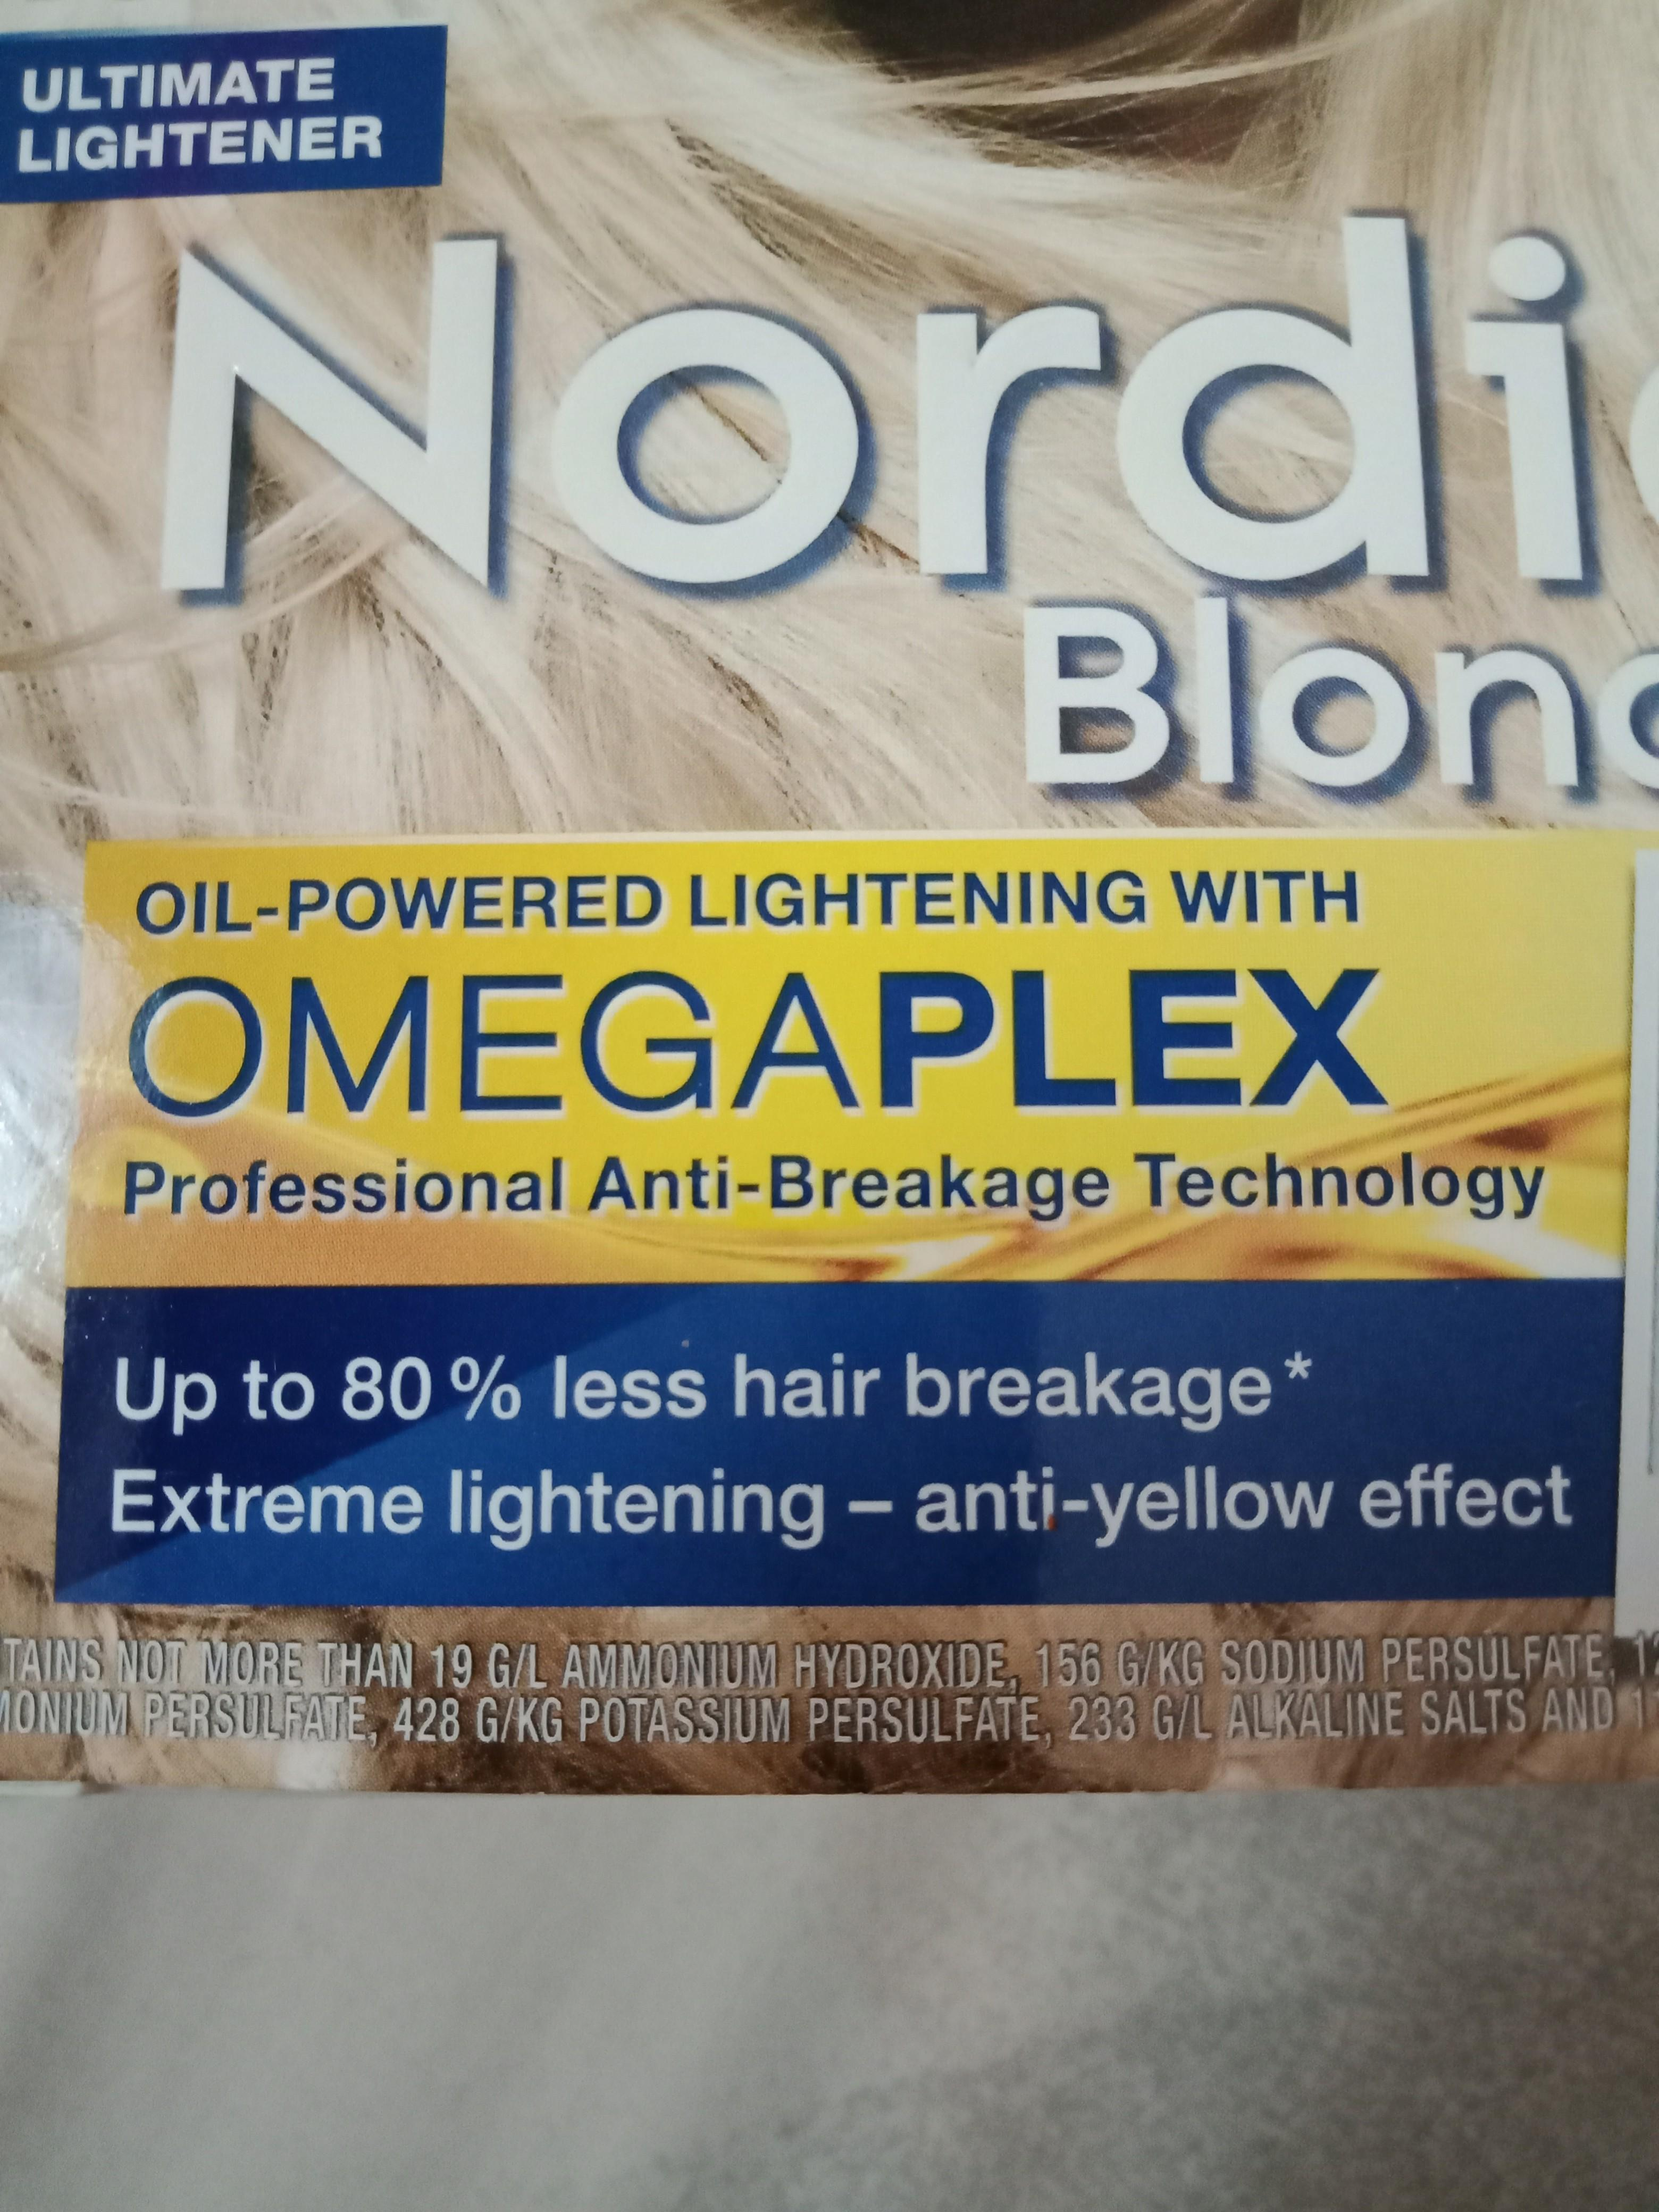 Nordic - Blonde hair dye // up to 9 levels of lift ($14 for 2 or $7 each)